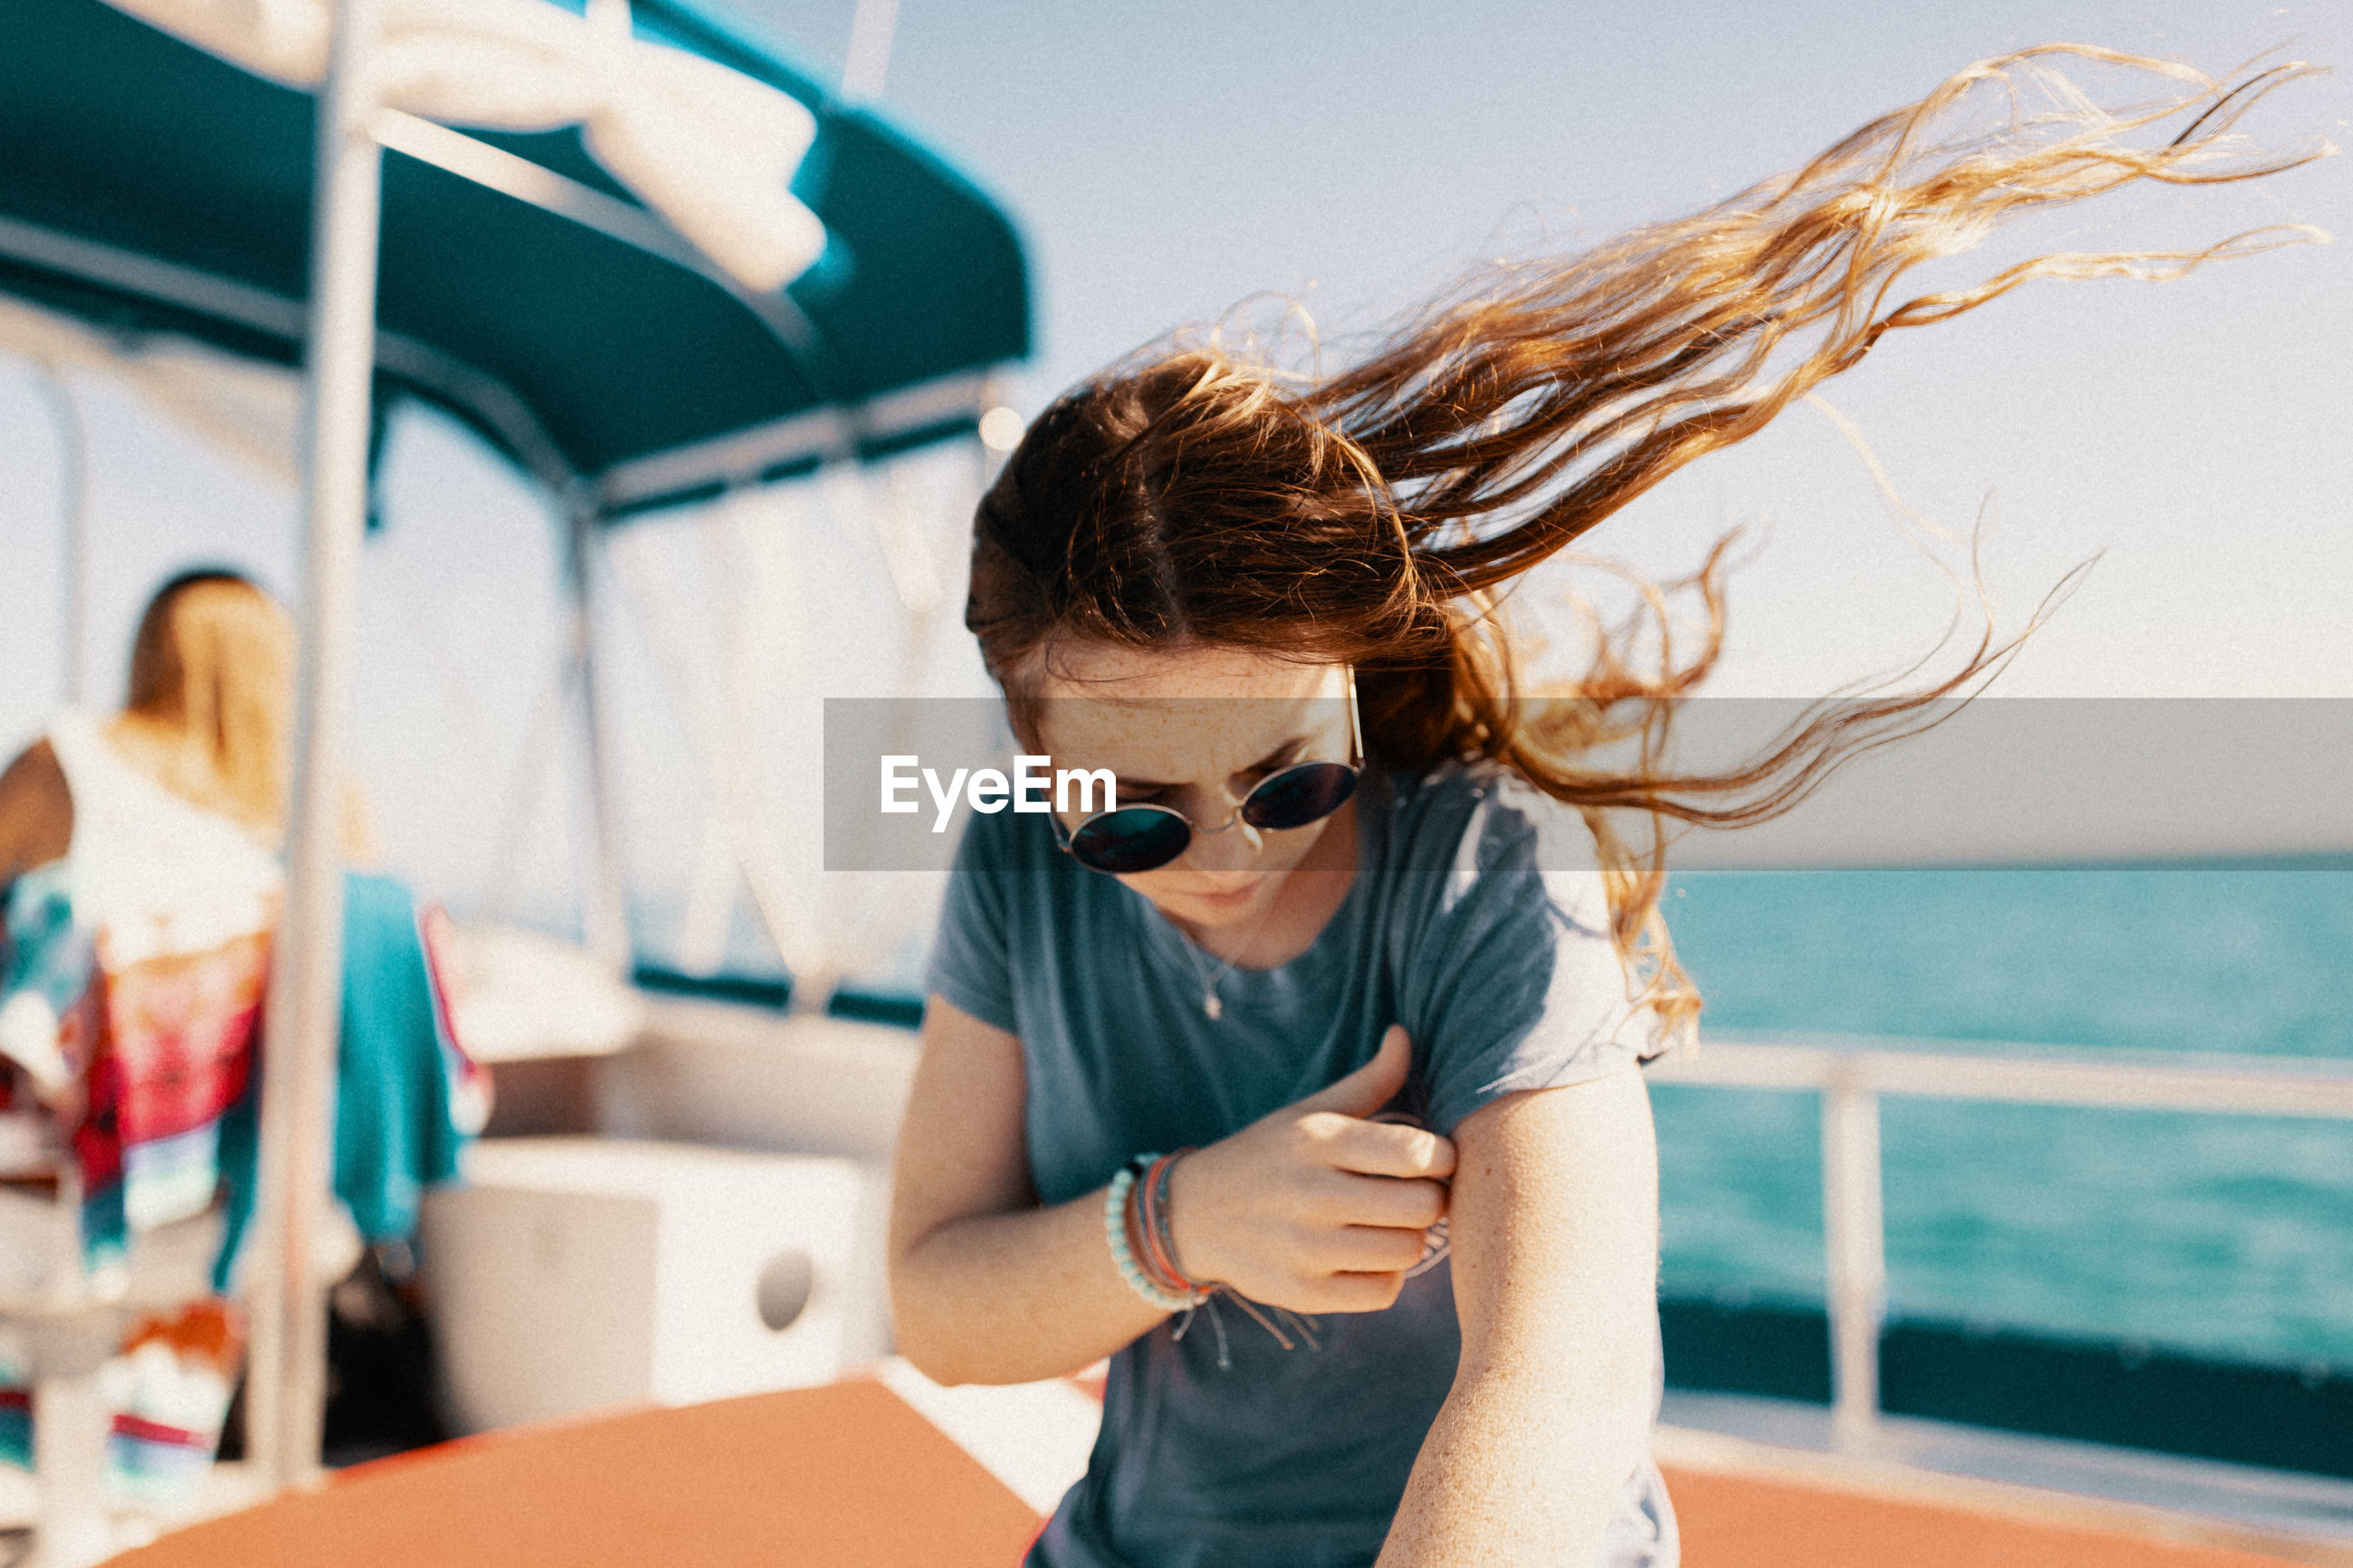 YOUNG WOMAN WEARING SUNGLASSES AGAINST SEA